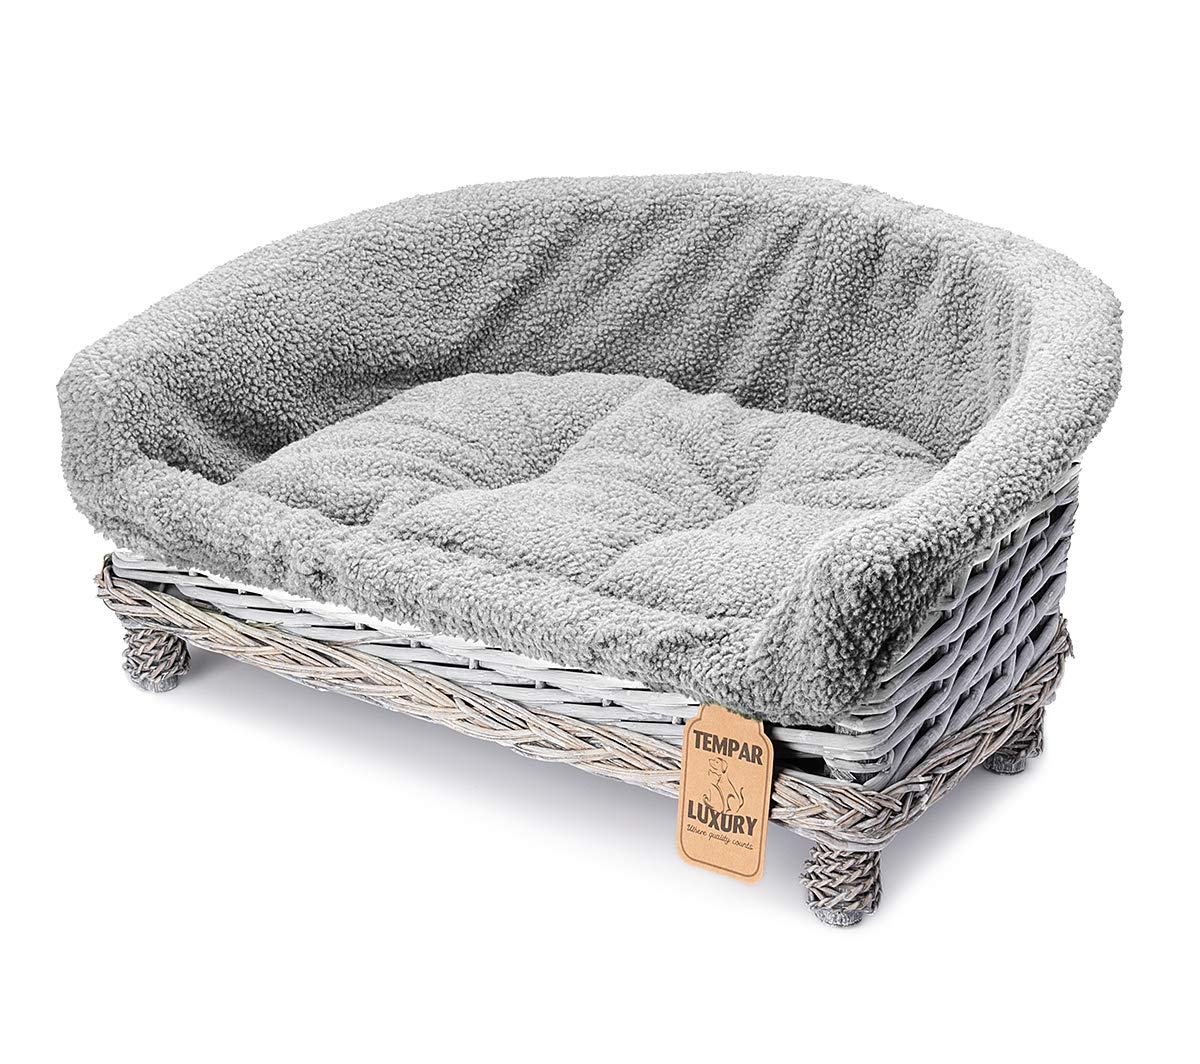 Strange Tempar Luxury Handmade Half Moon Wicker Pet Cat Dog Sofa Couch Cushion Blanket Beds Free Replacement Cushion And Cover Large Grey Andrewgaddart Wooden Chair Designs For Living Room Andrewgaddartcom